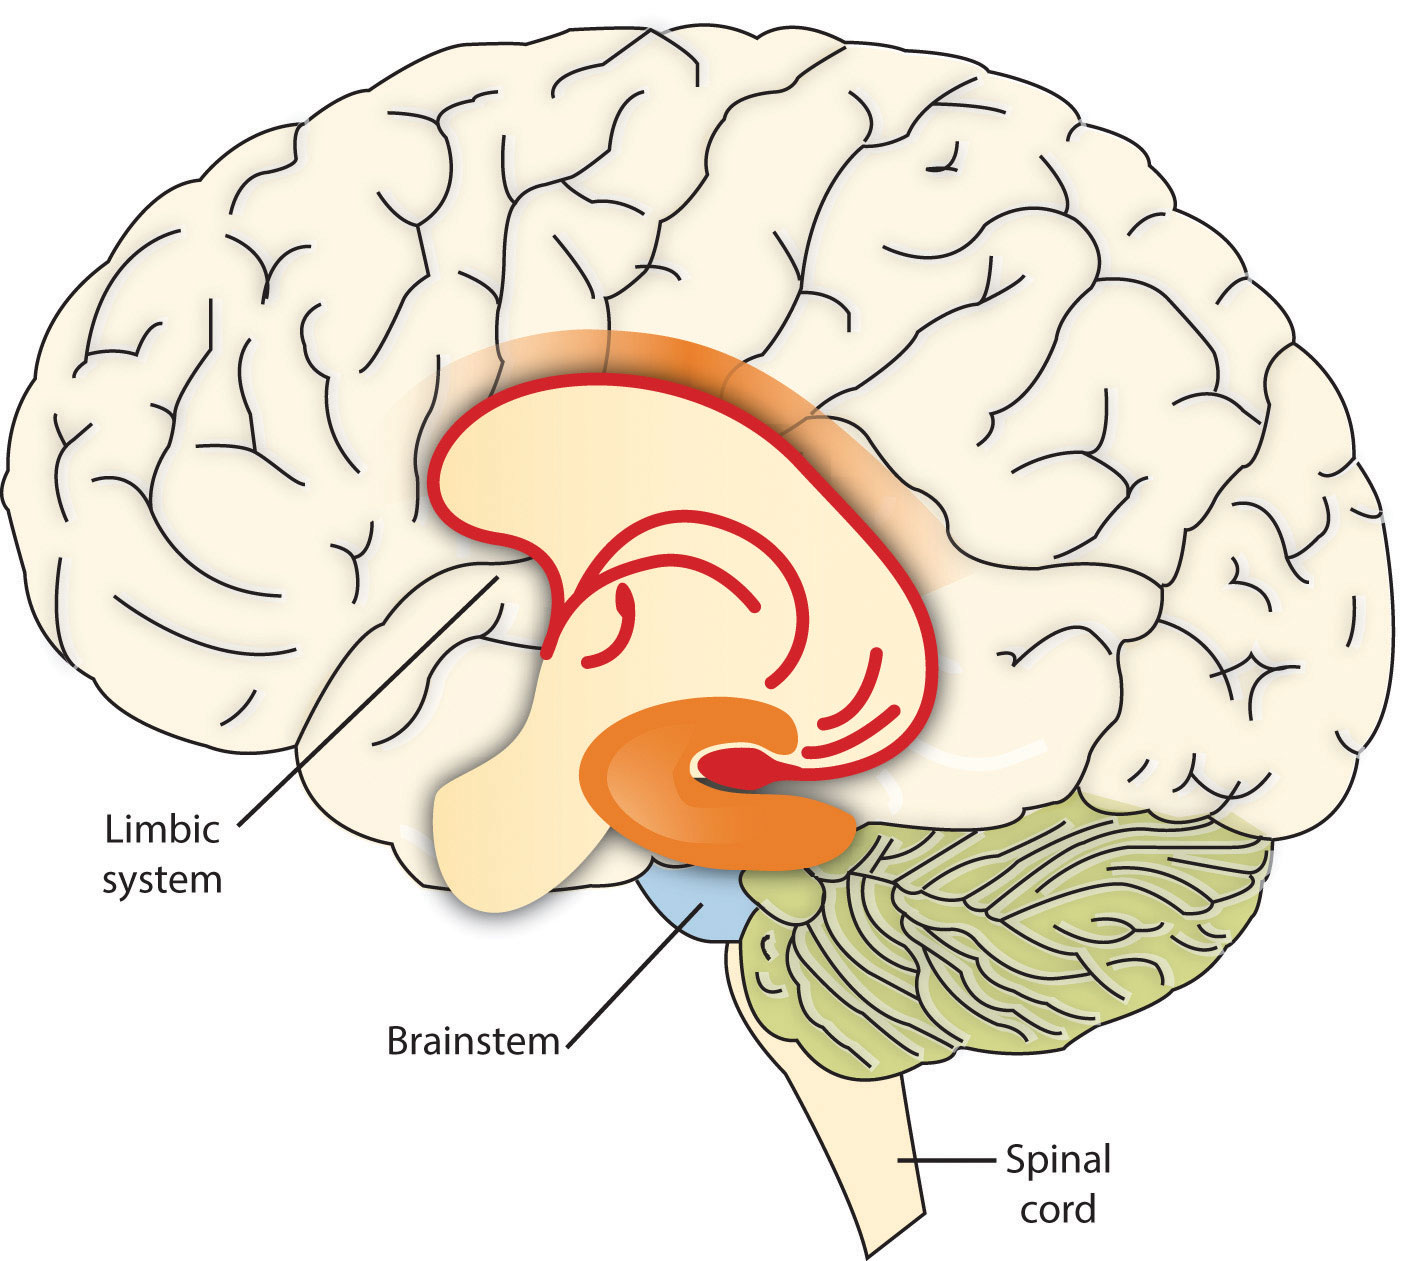 Structures Of The Limbic System